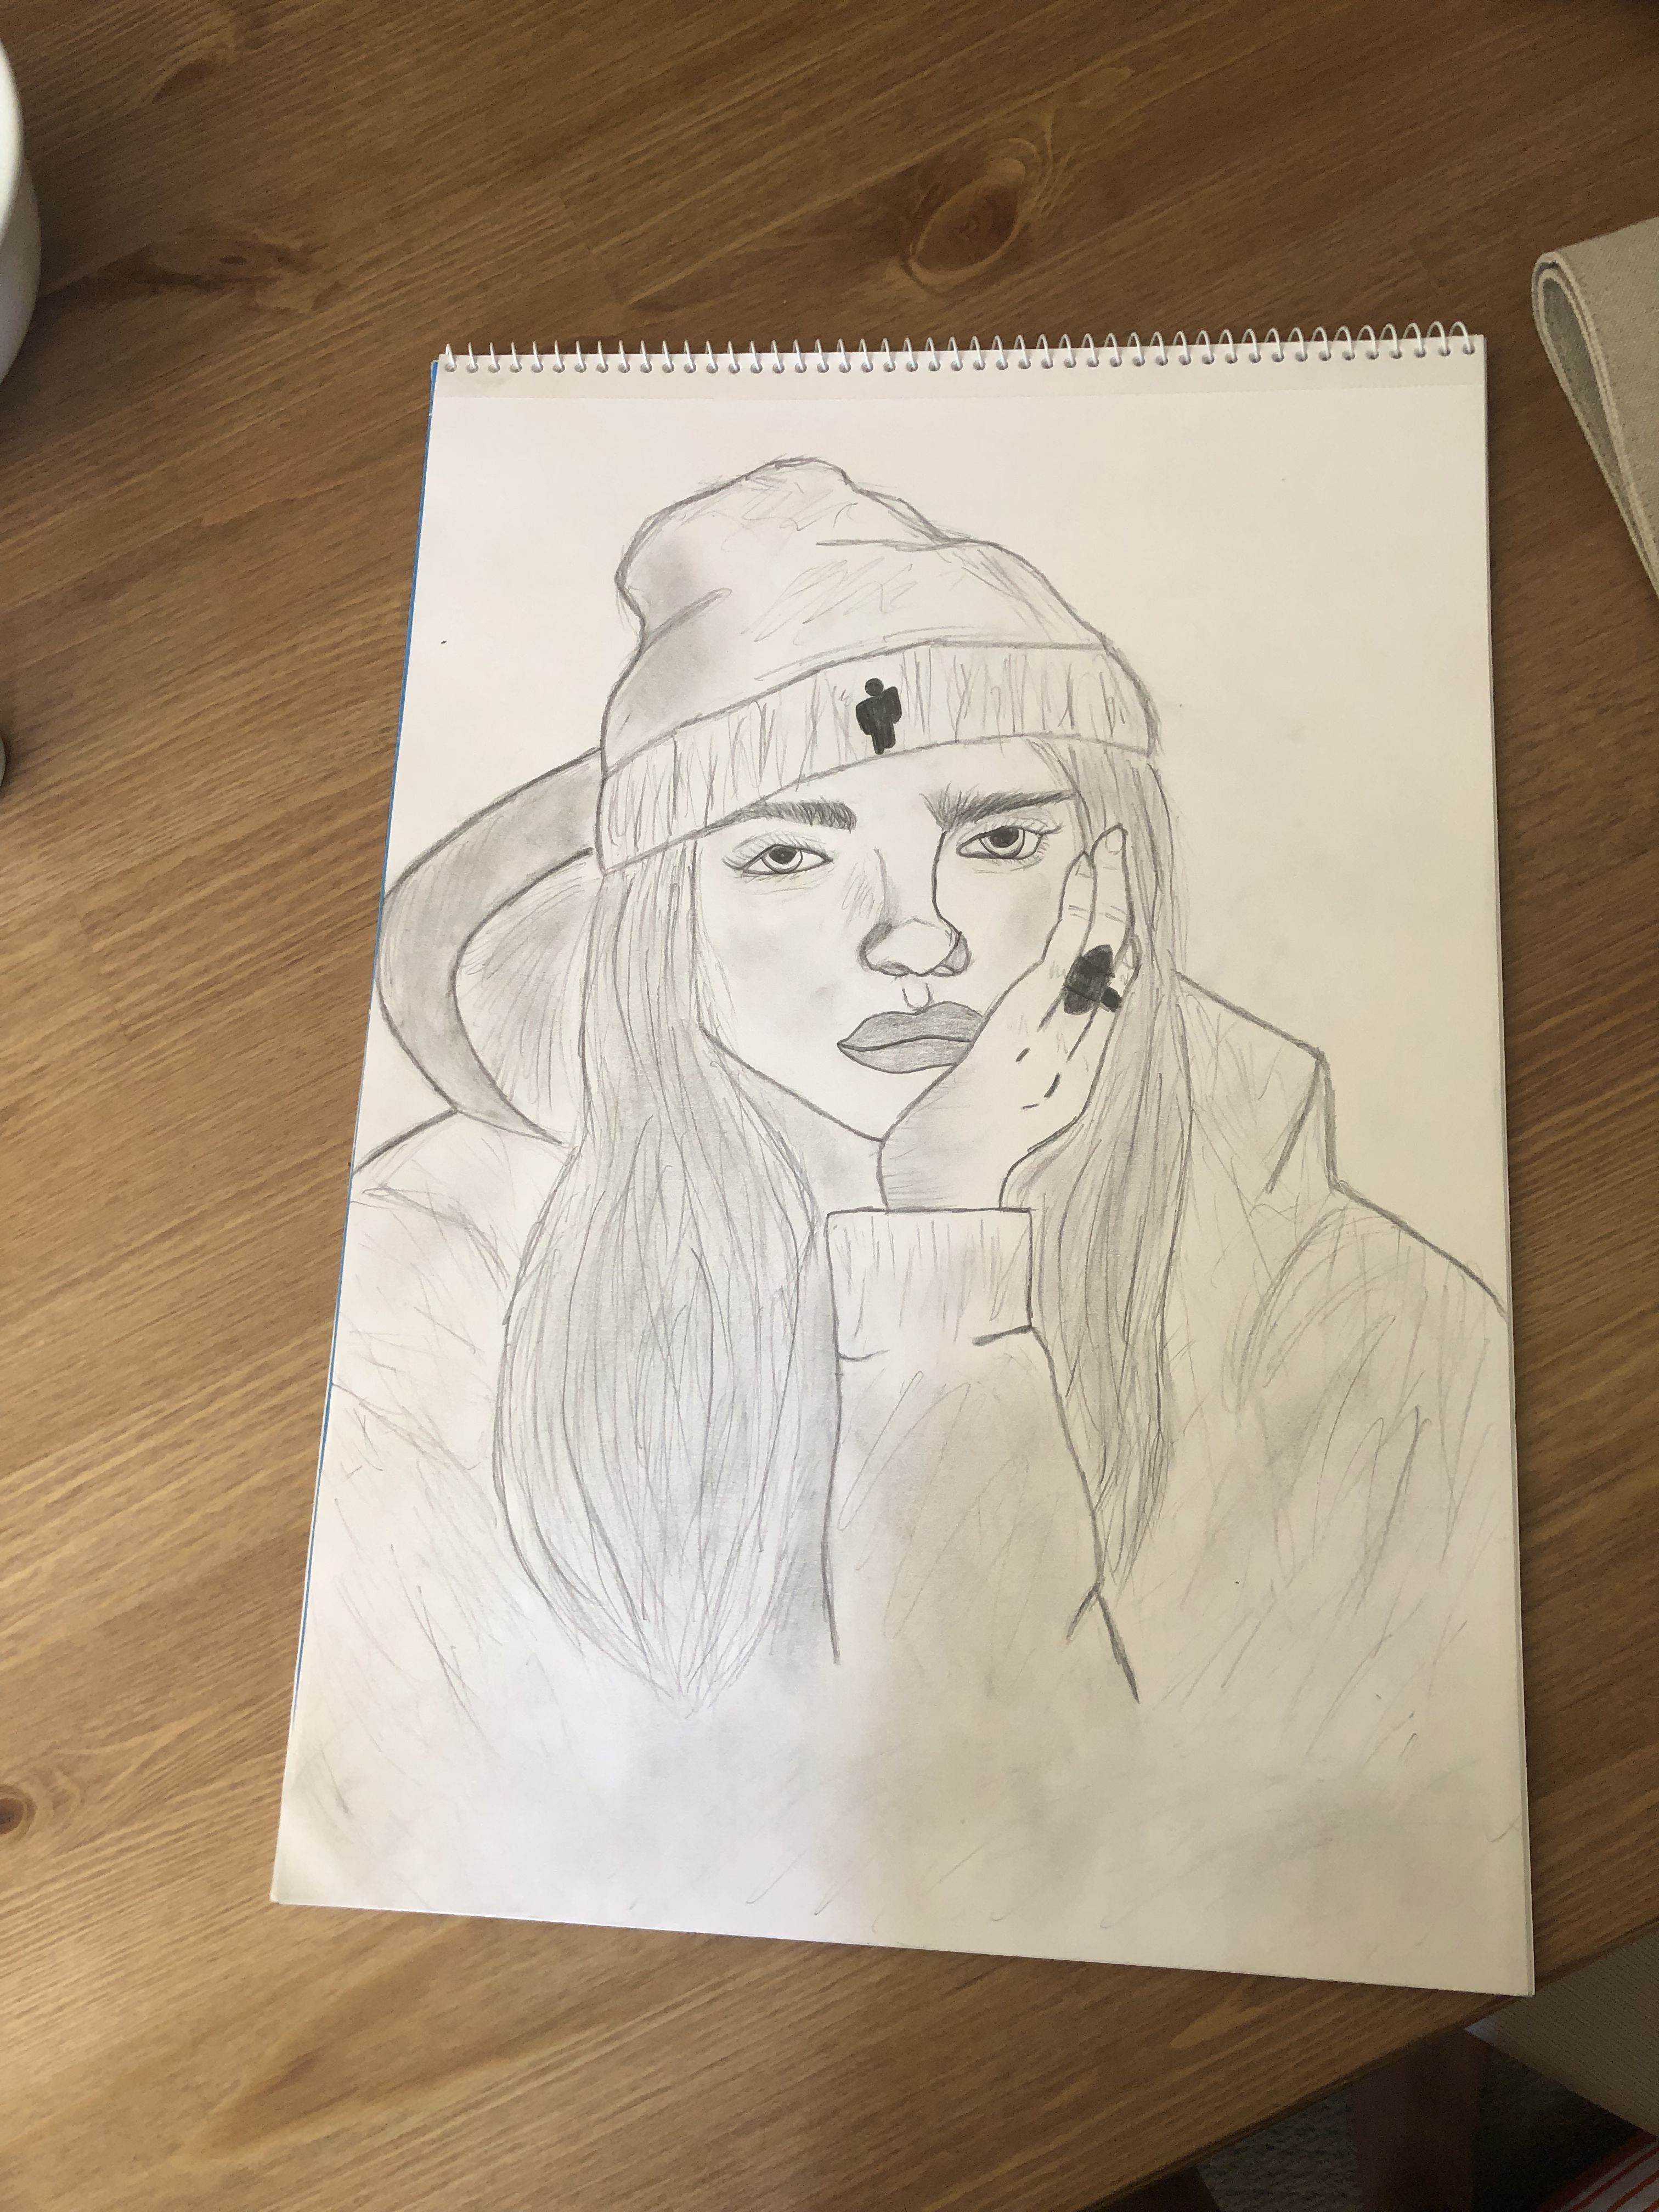 Billie Eilish Pencil Drawing That I Made Pencil Drawings